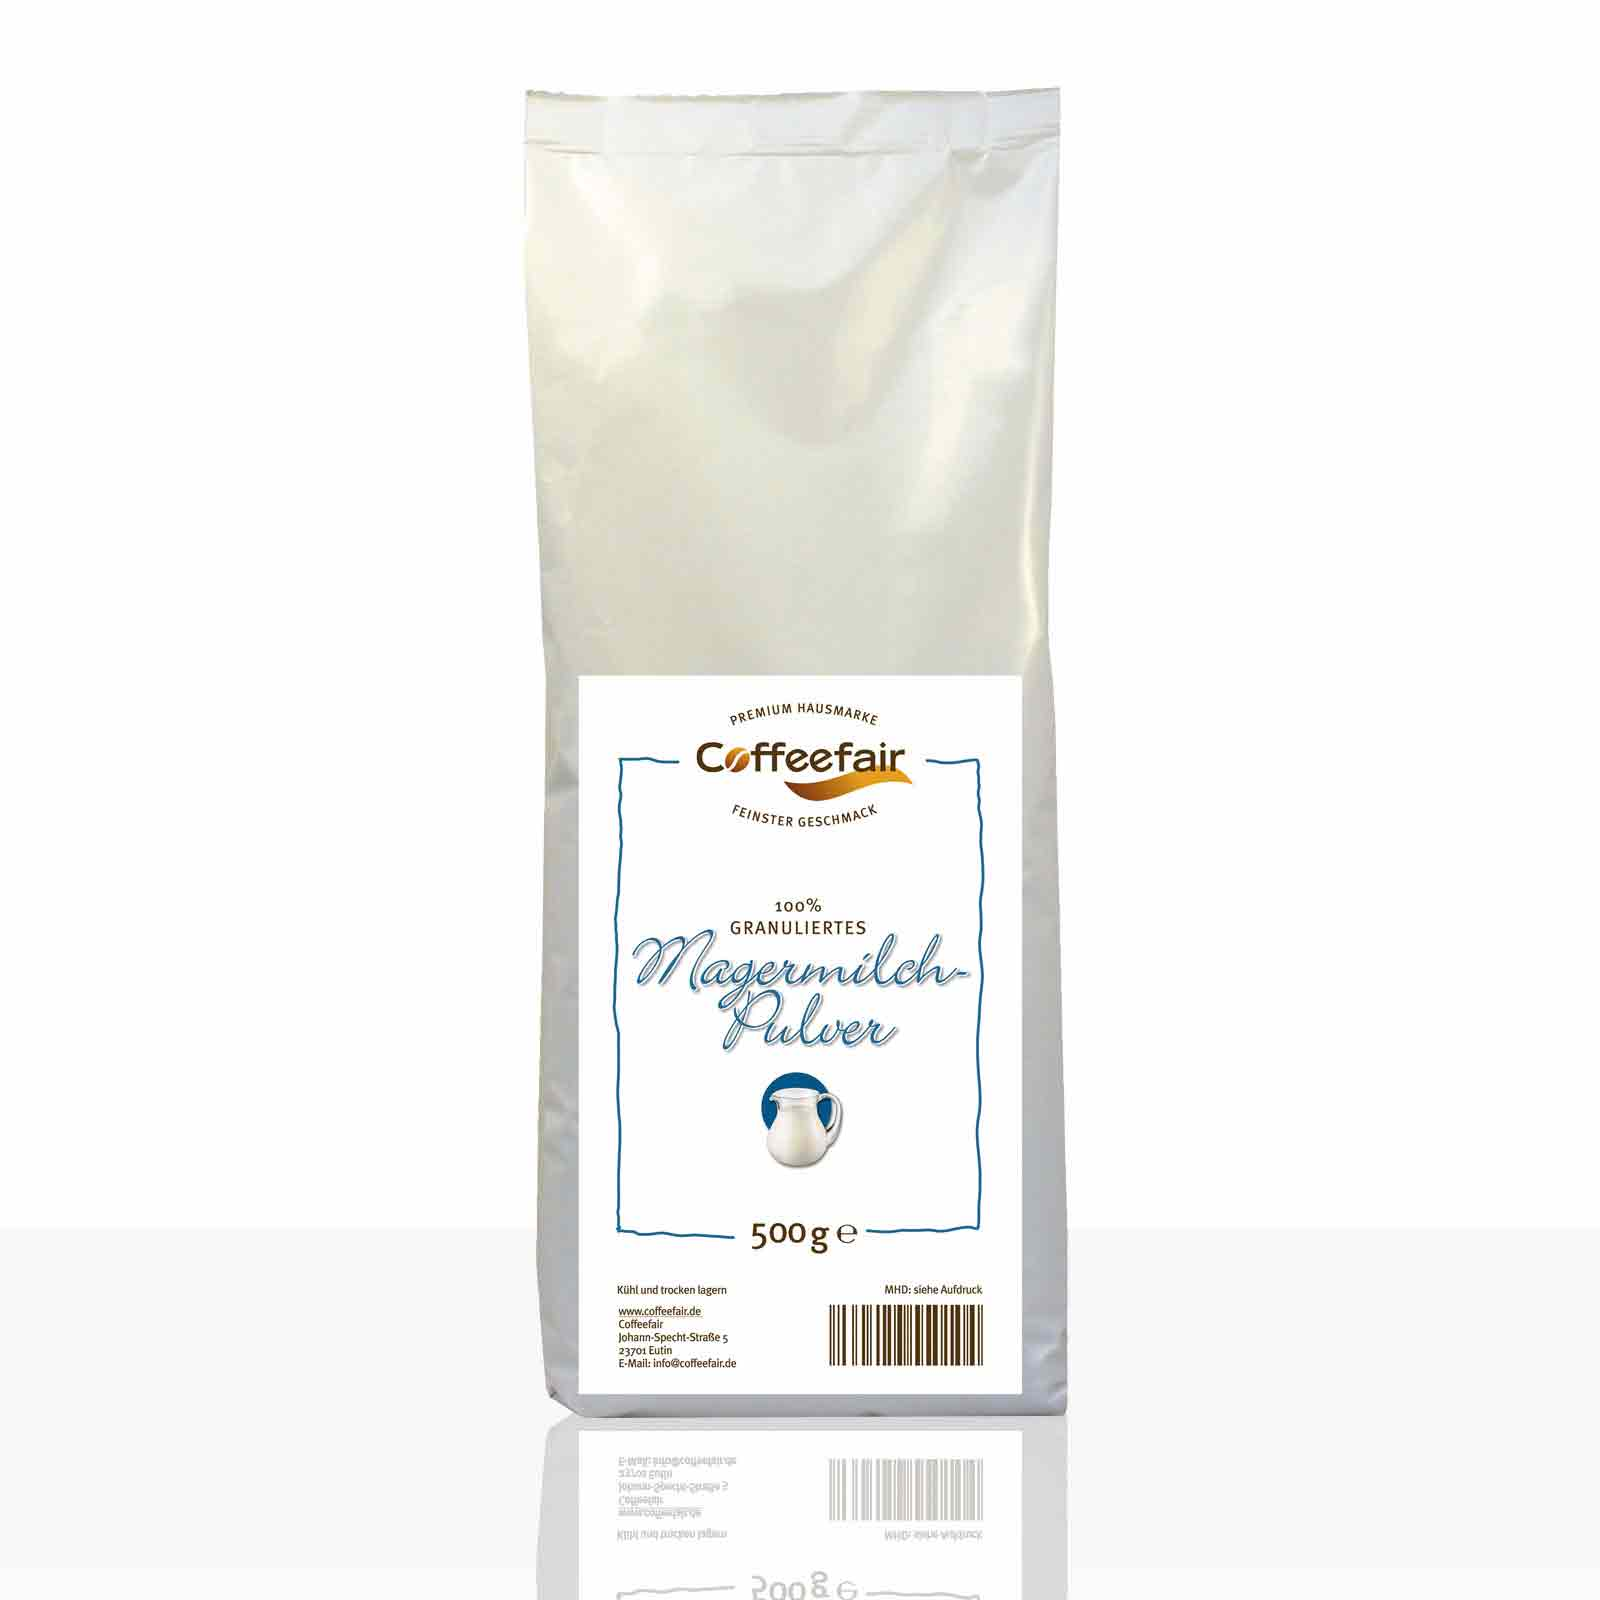 Coffeefair 100% granuliertes Magermilchpulver 500g, Topping Granulat (Neues Design)